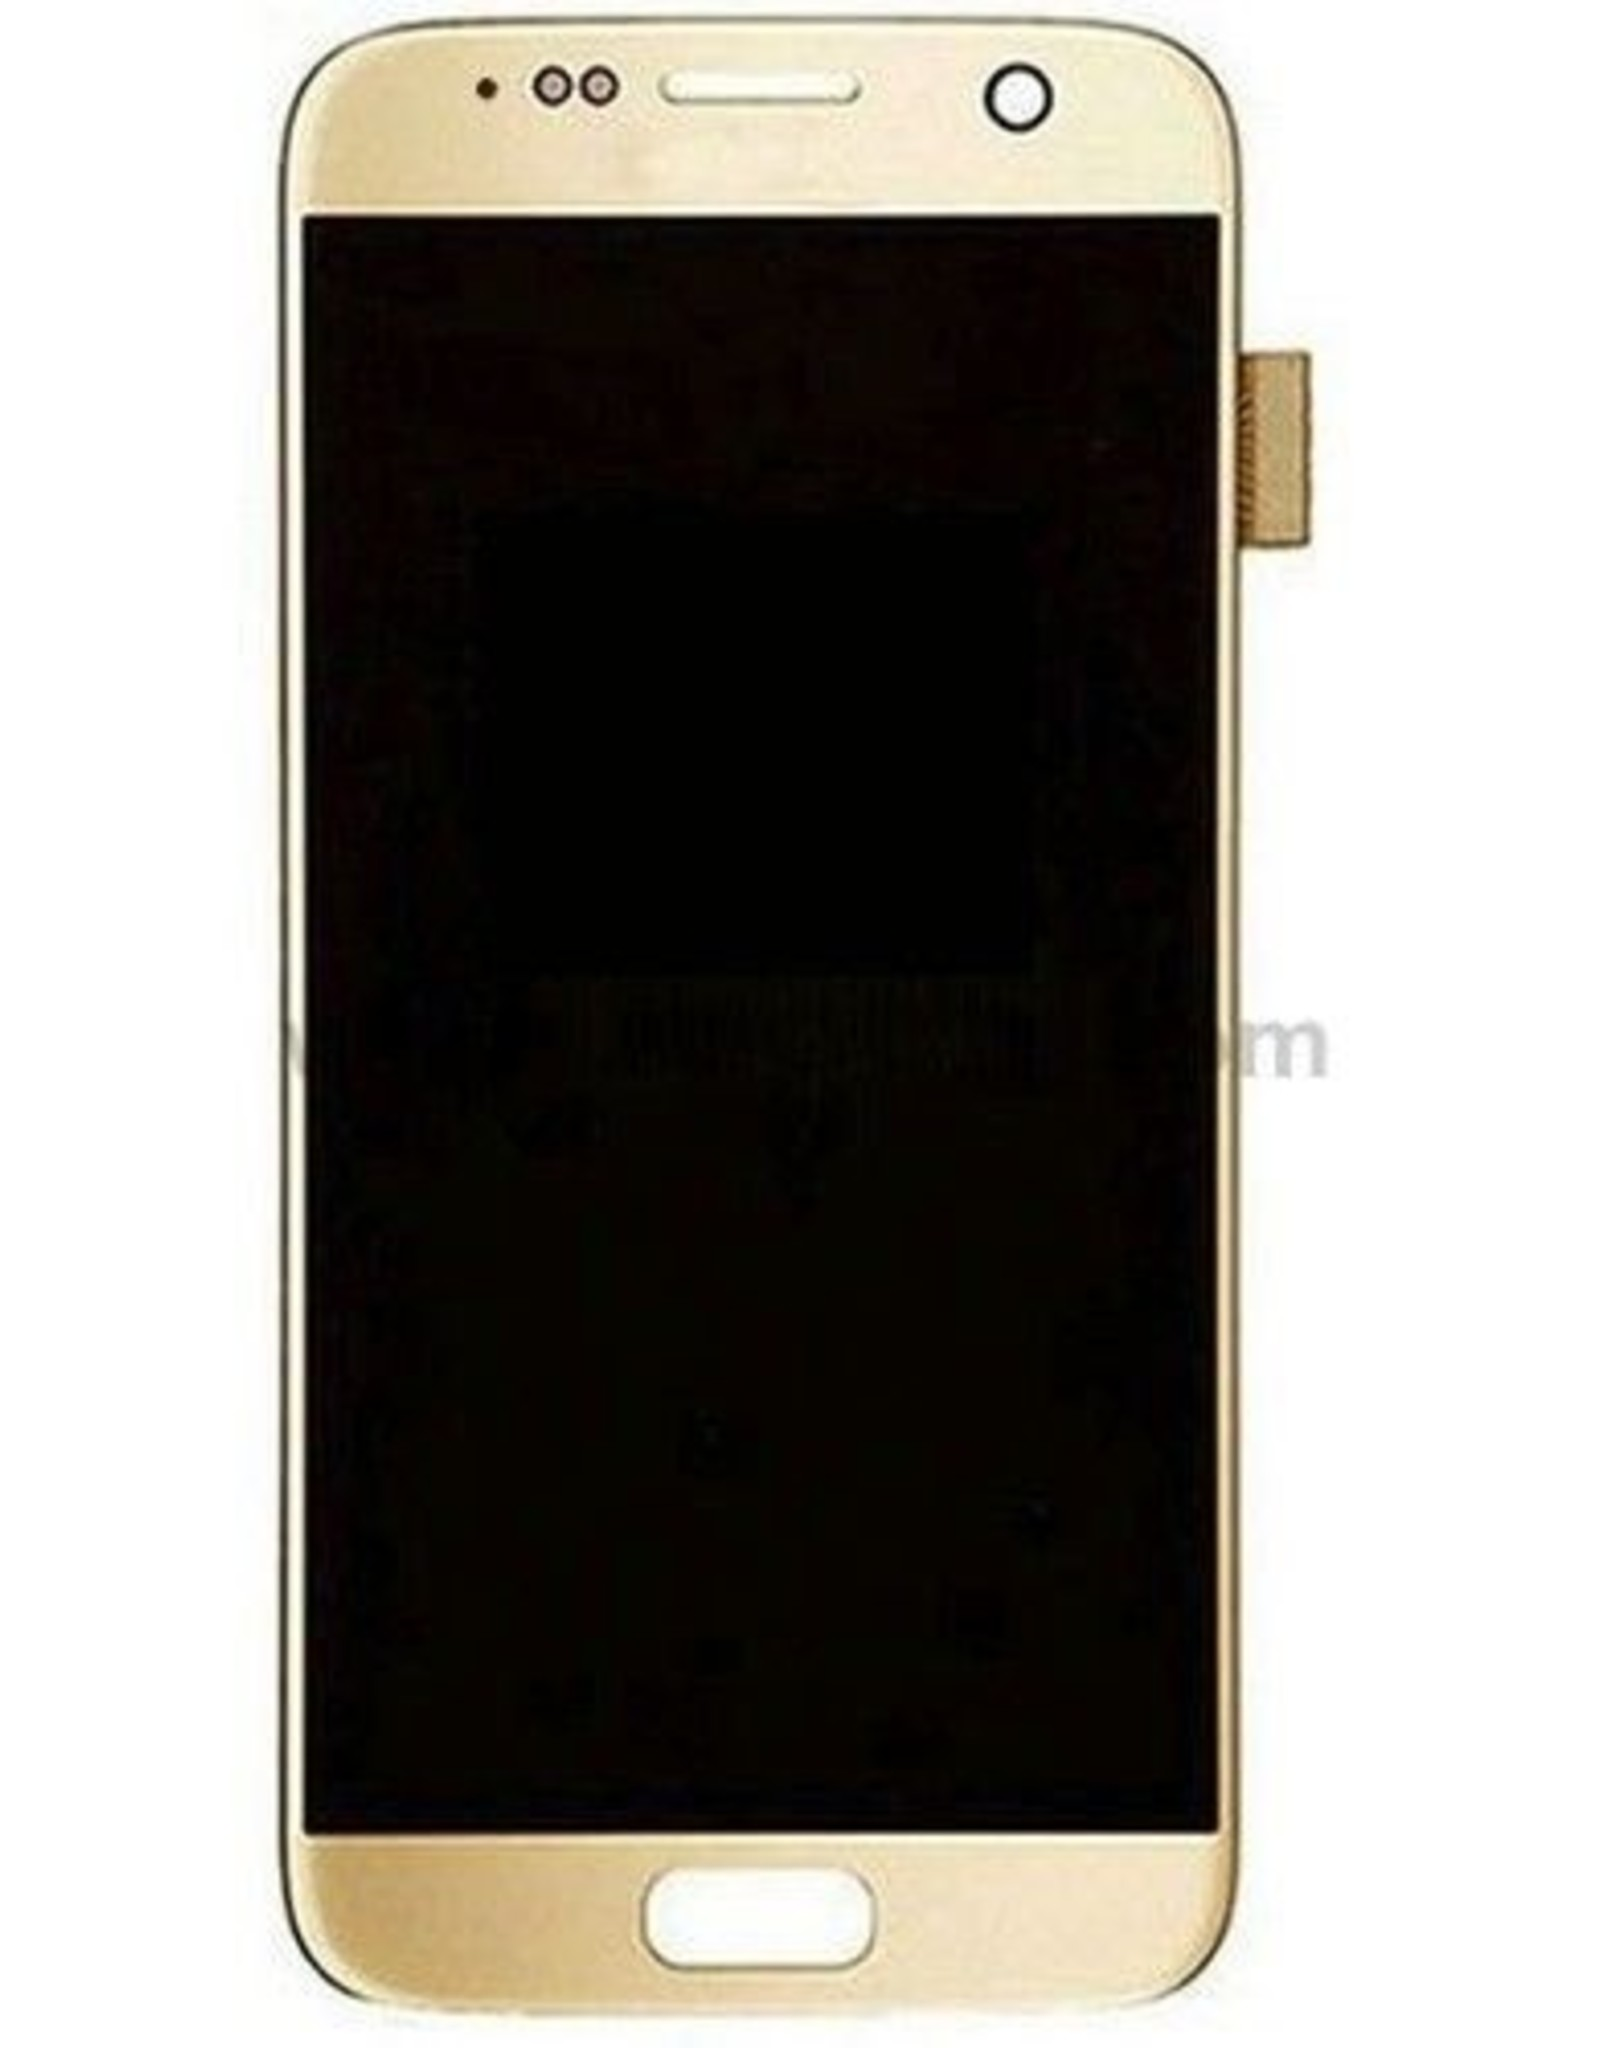 Samsung Samsung Galaxy S7 SM G930 G930F G930A G930V G930P G930T G930R4 G930W8 LCD Display Touch Screen Digitizer - Gold